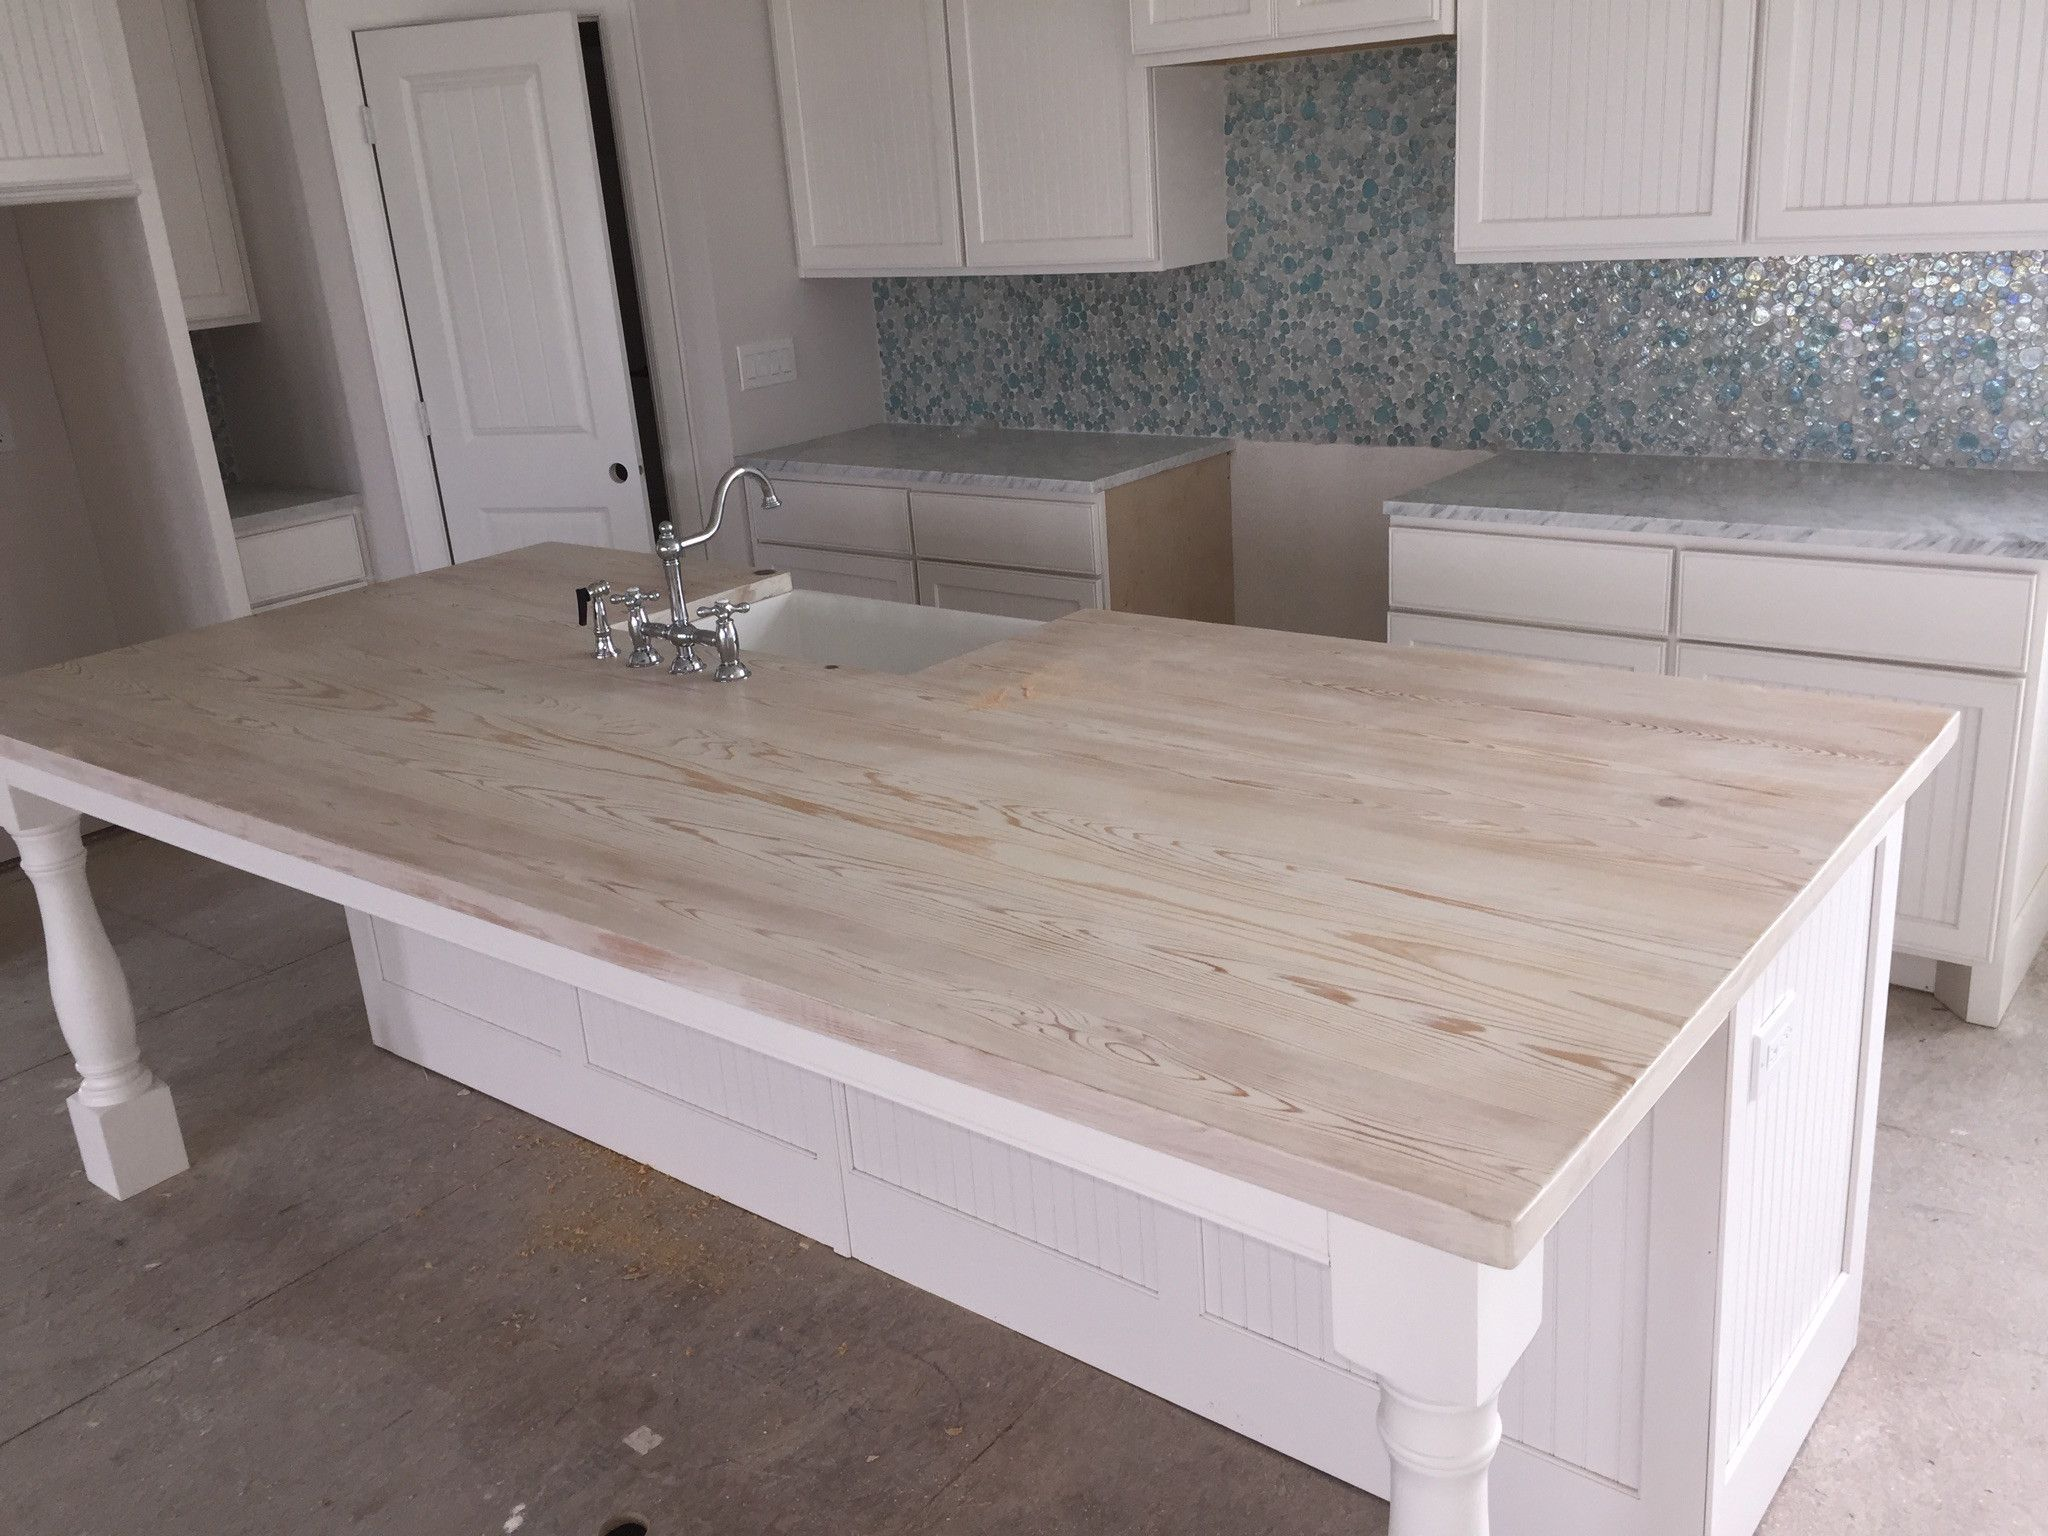 Best Whitewash Butcher Block Countertop Unique Add Ons Wood 640 x 480